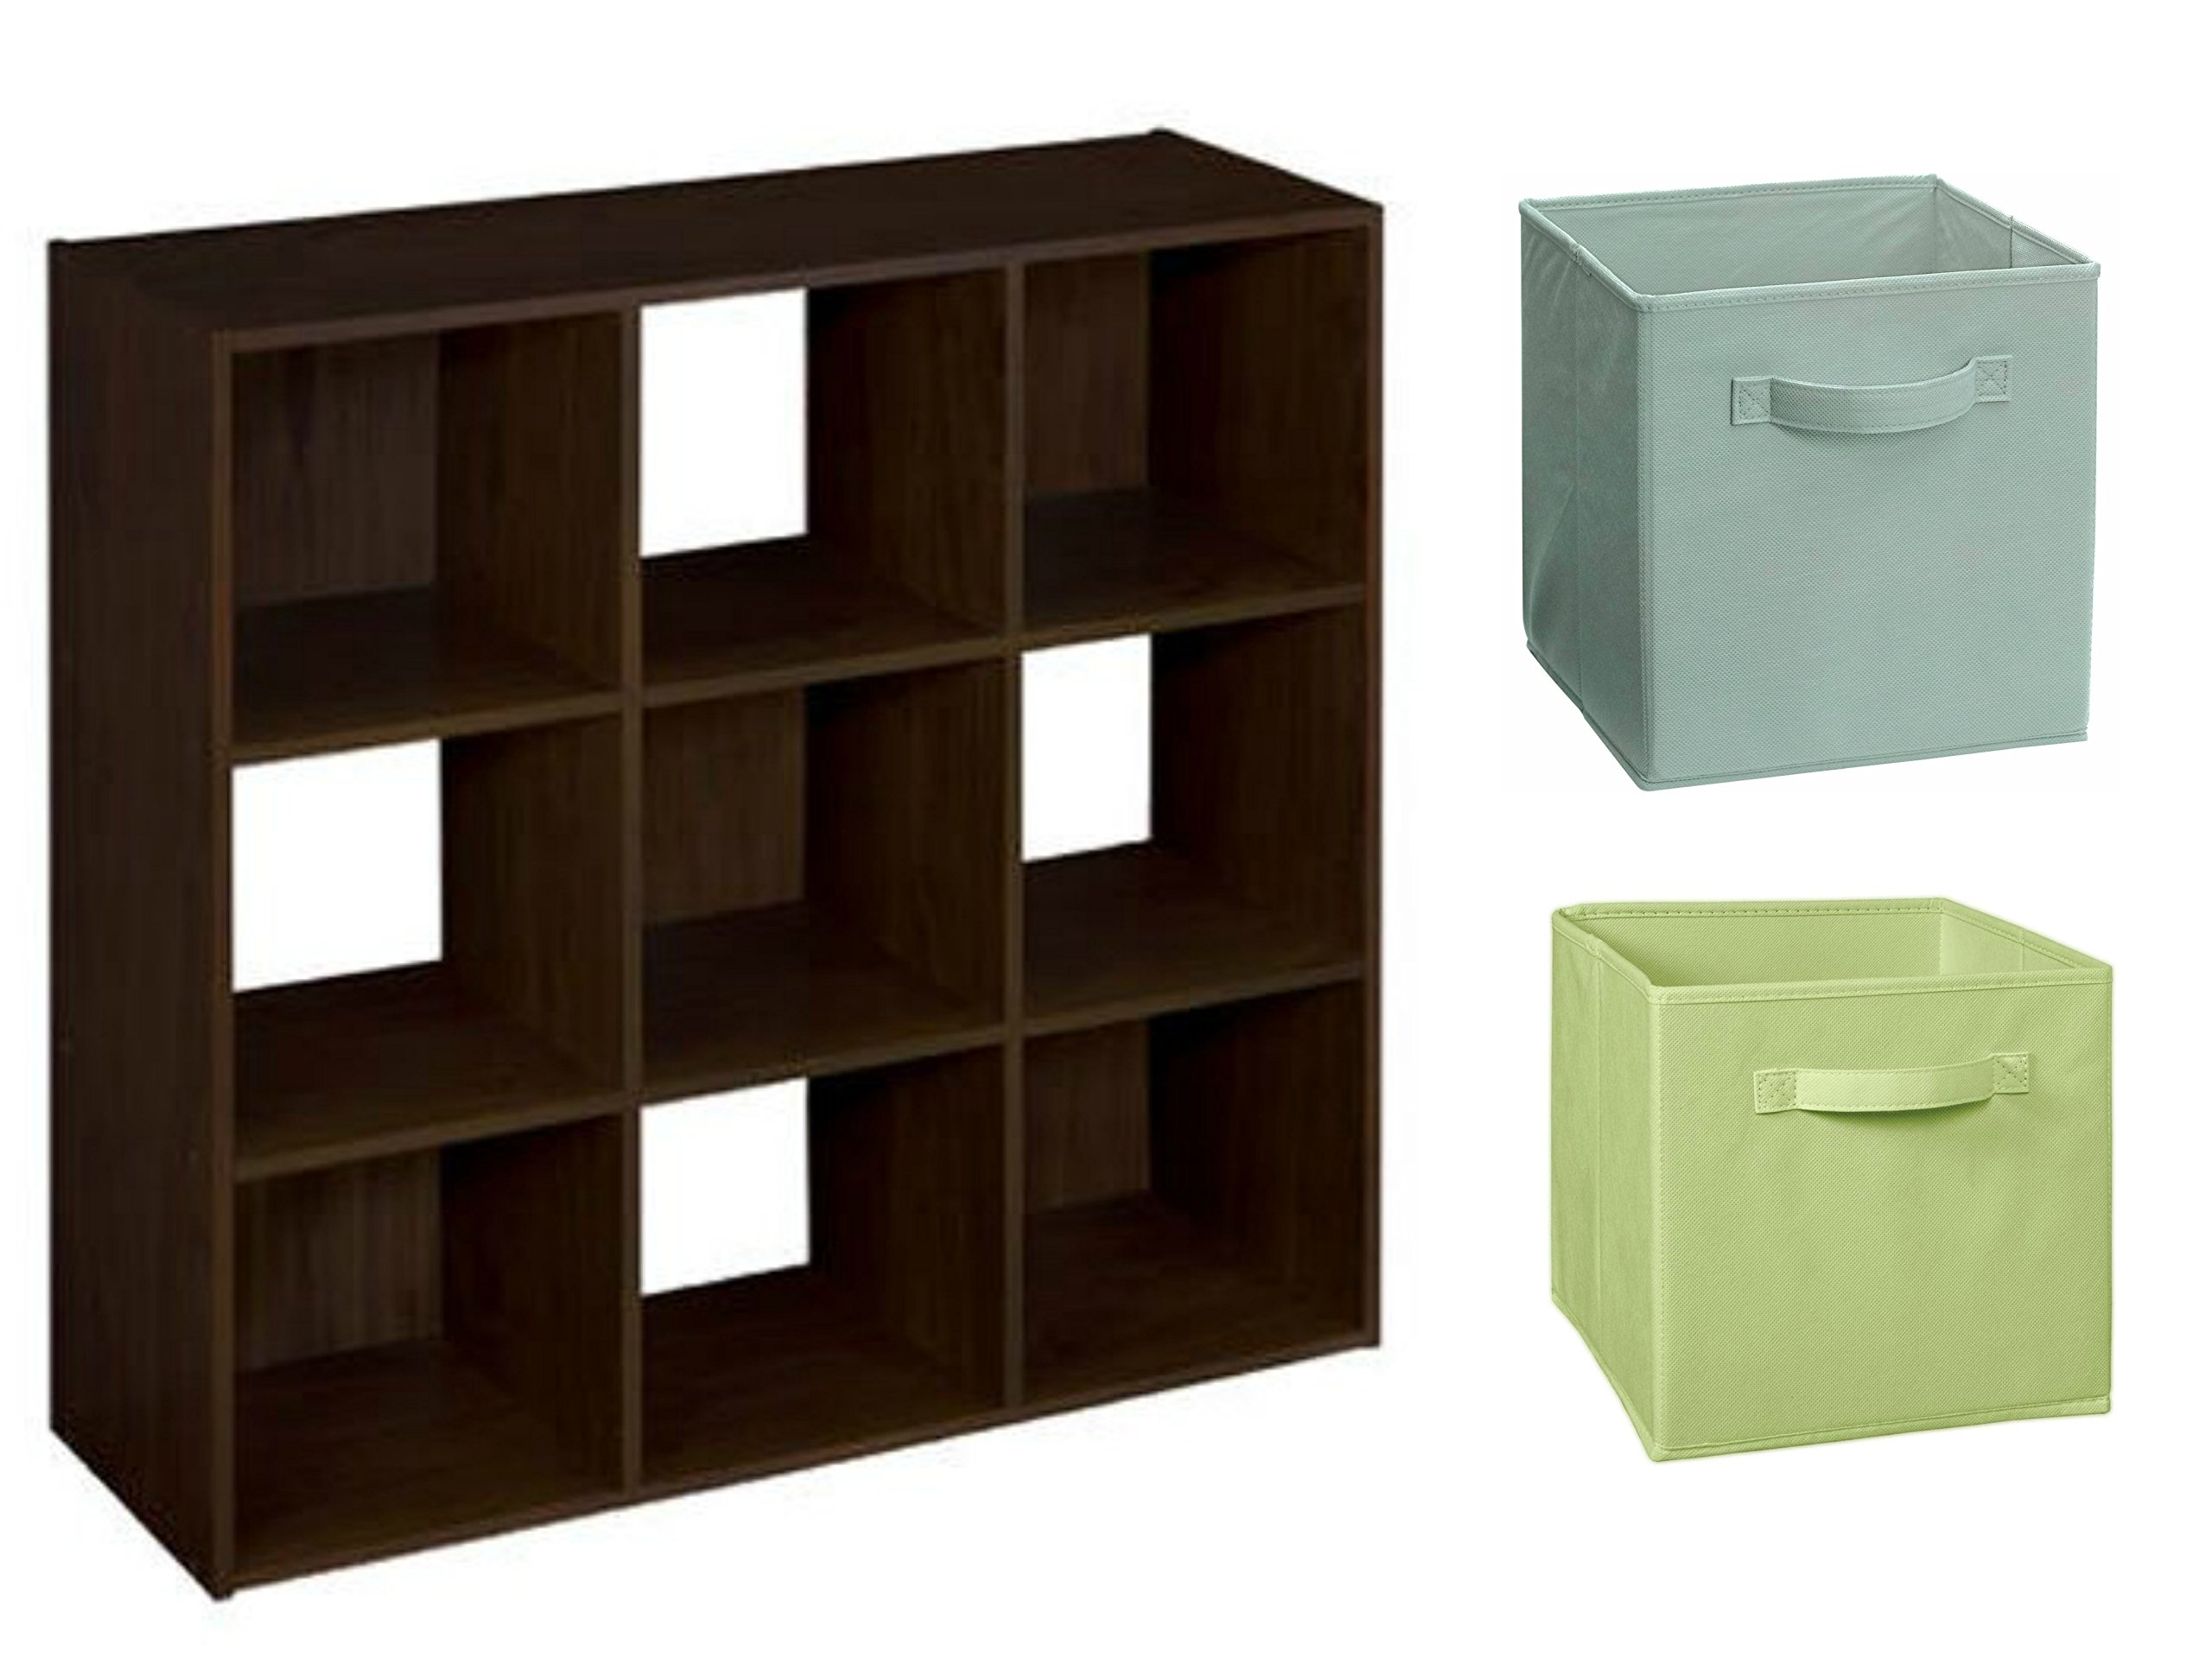 ClosetMaid Cubeicals 9-Cube Organizer in Espresso with ClosetMaid Fabric Drawer, 2 Pieces in Pistachio and 2 Pieces Seafoam Green by MegaMarketing